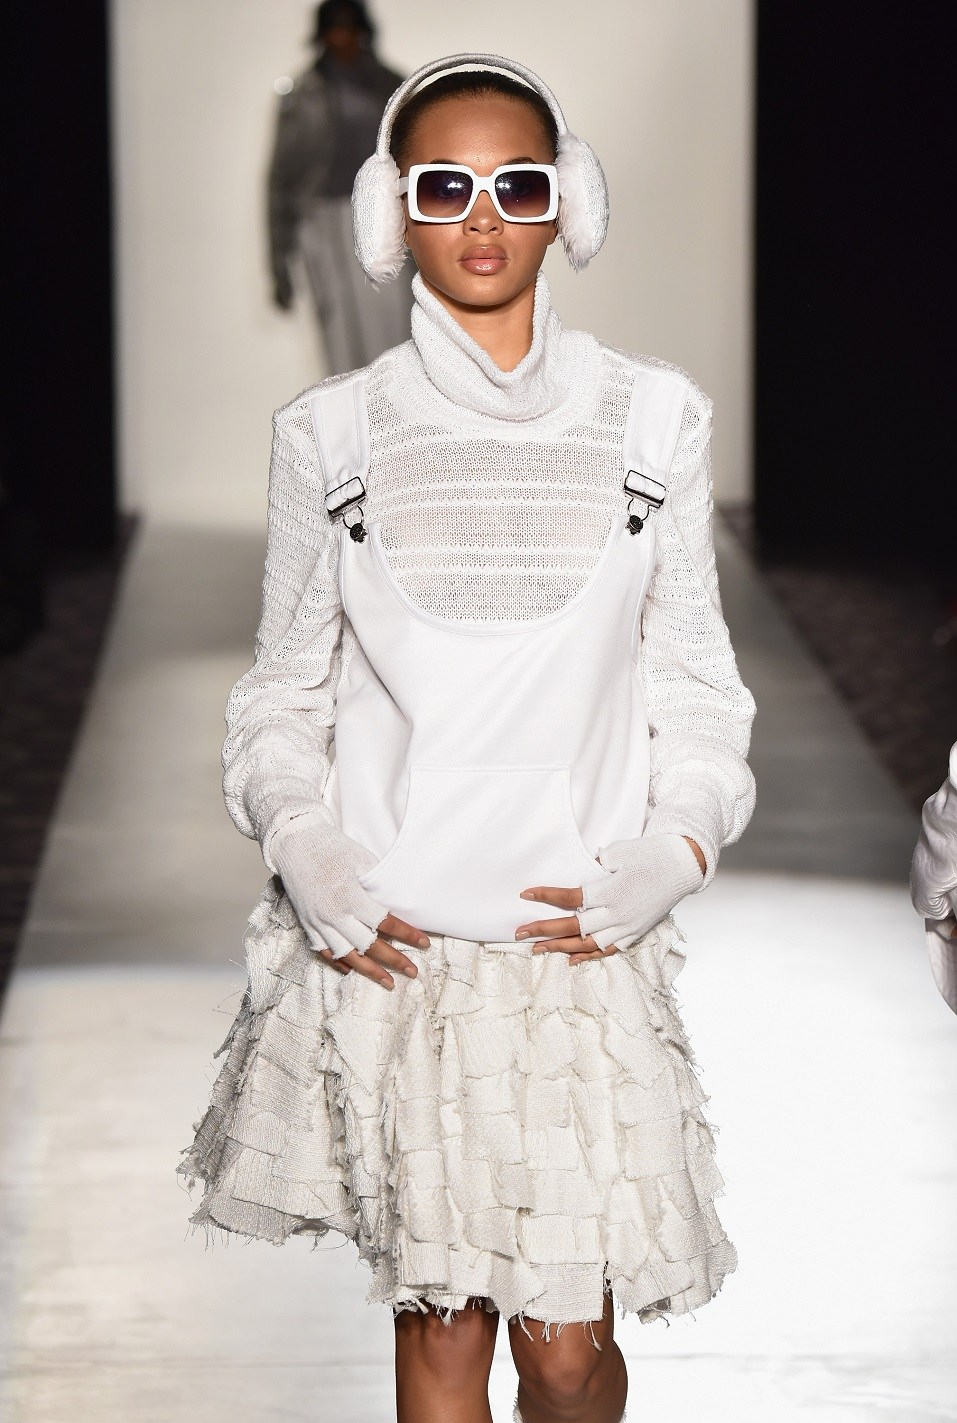 A model walks the runway at the Designers' Collective runway show featuring Ayasa Afi